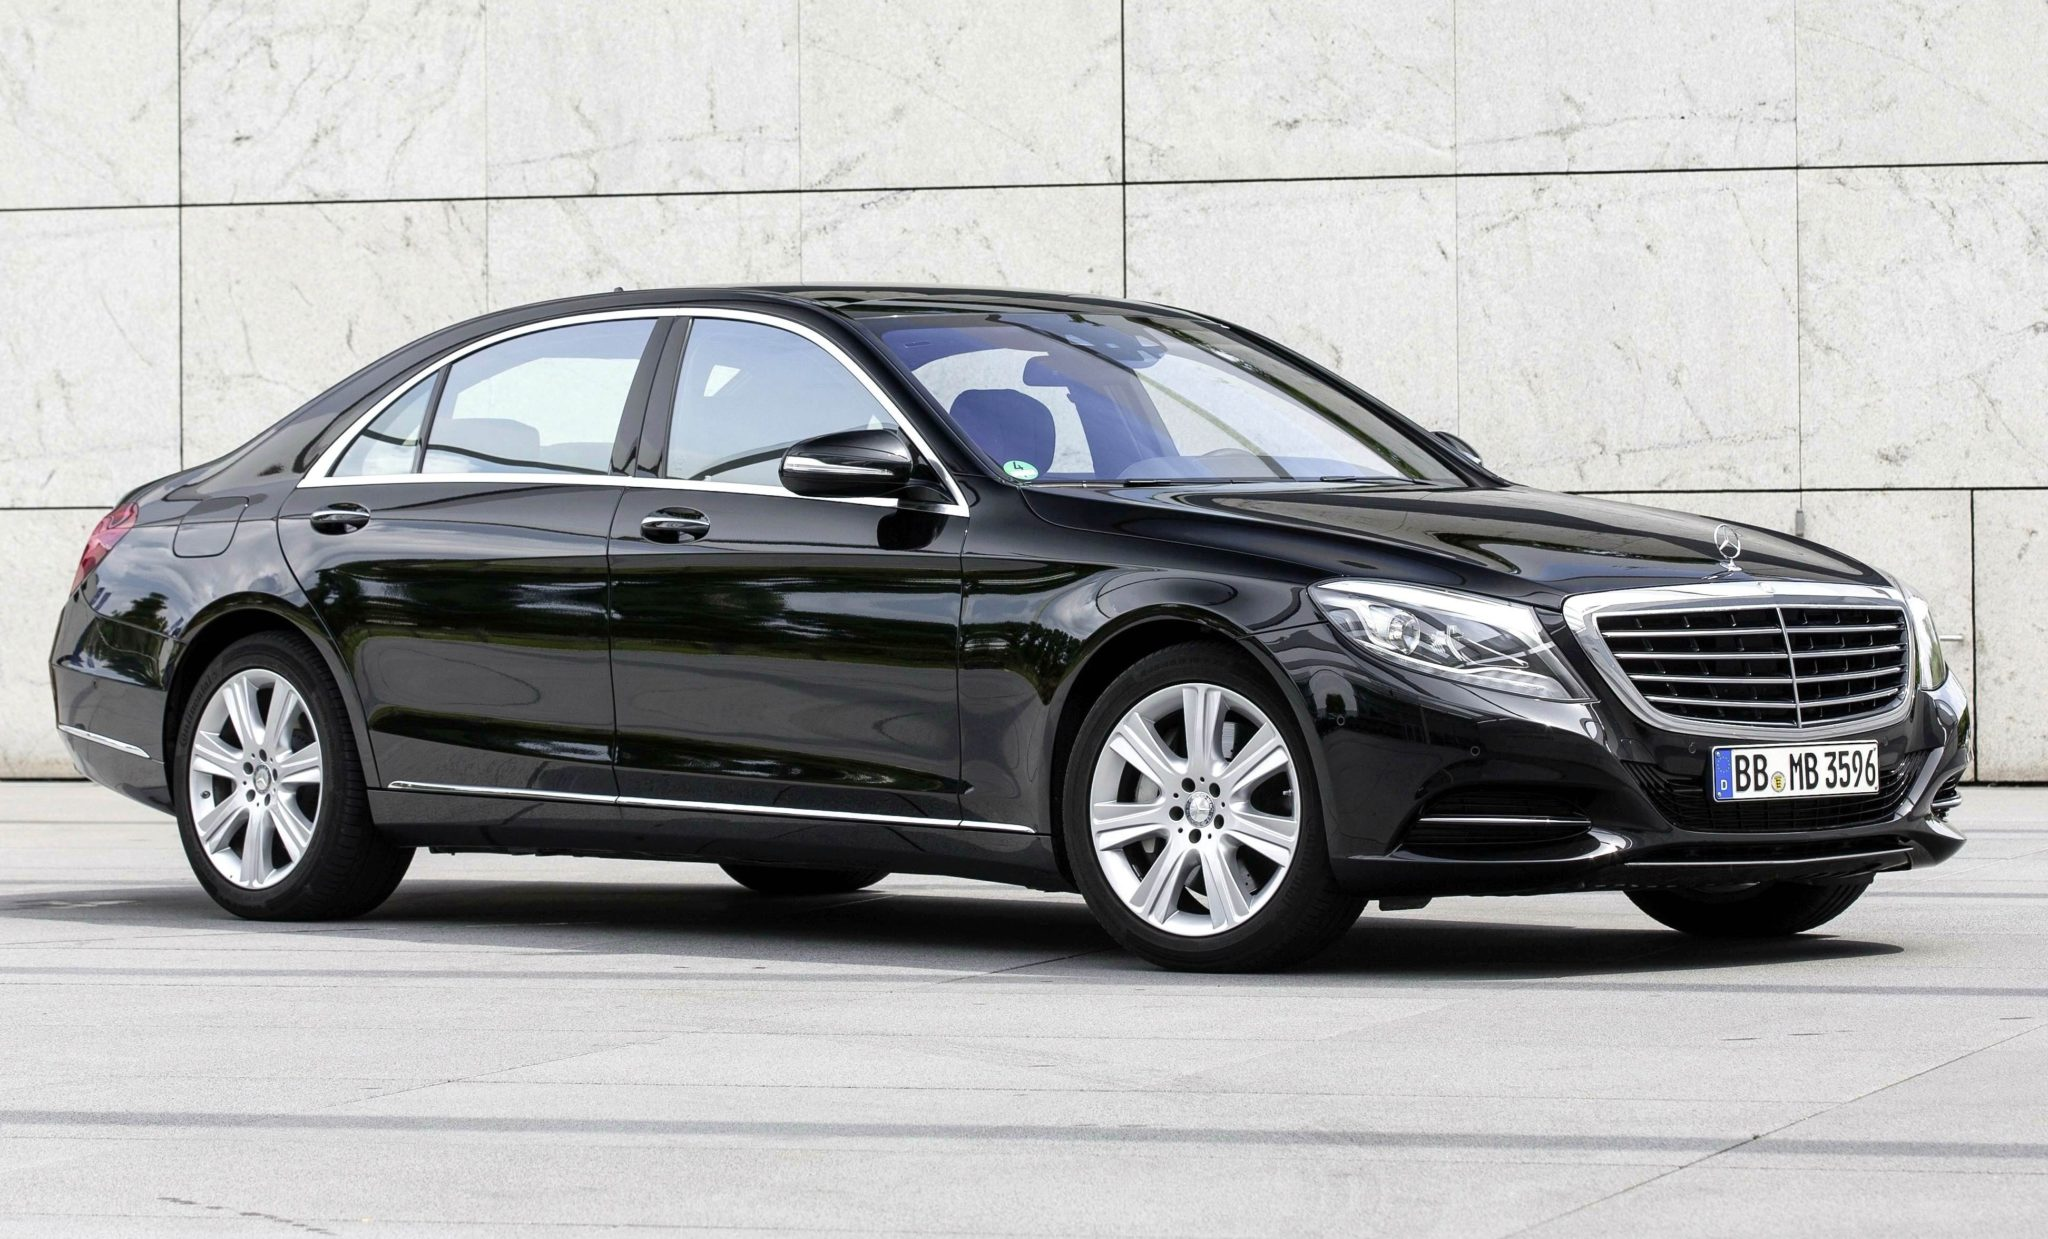 Mercedes benz s500 electric vehicle info plug in motorwerks for New mercedes benz s class 2014